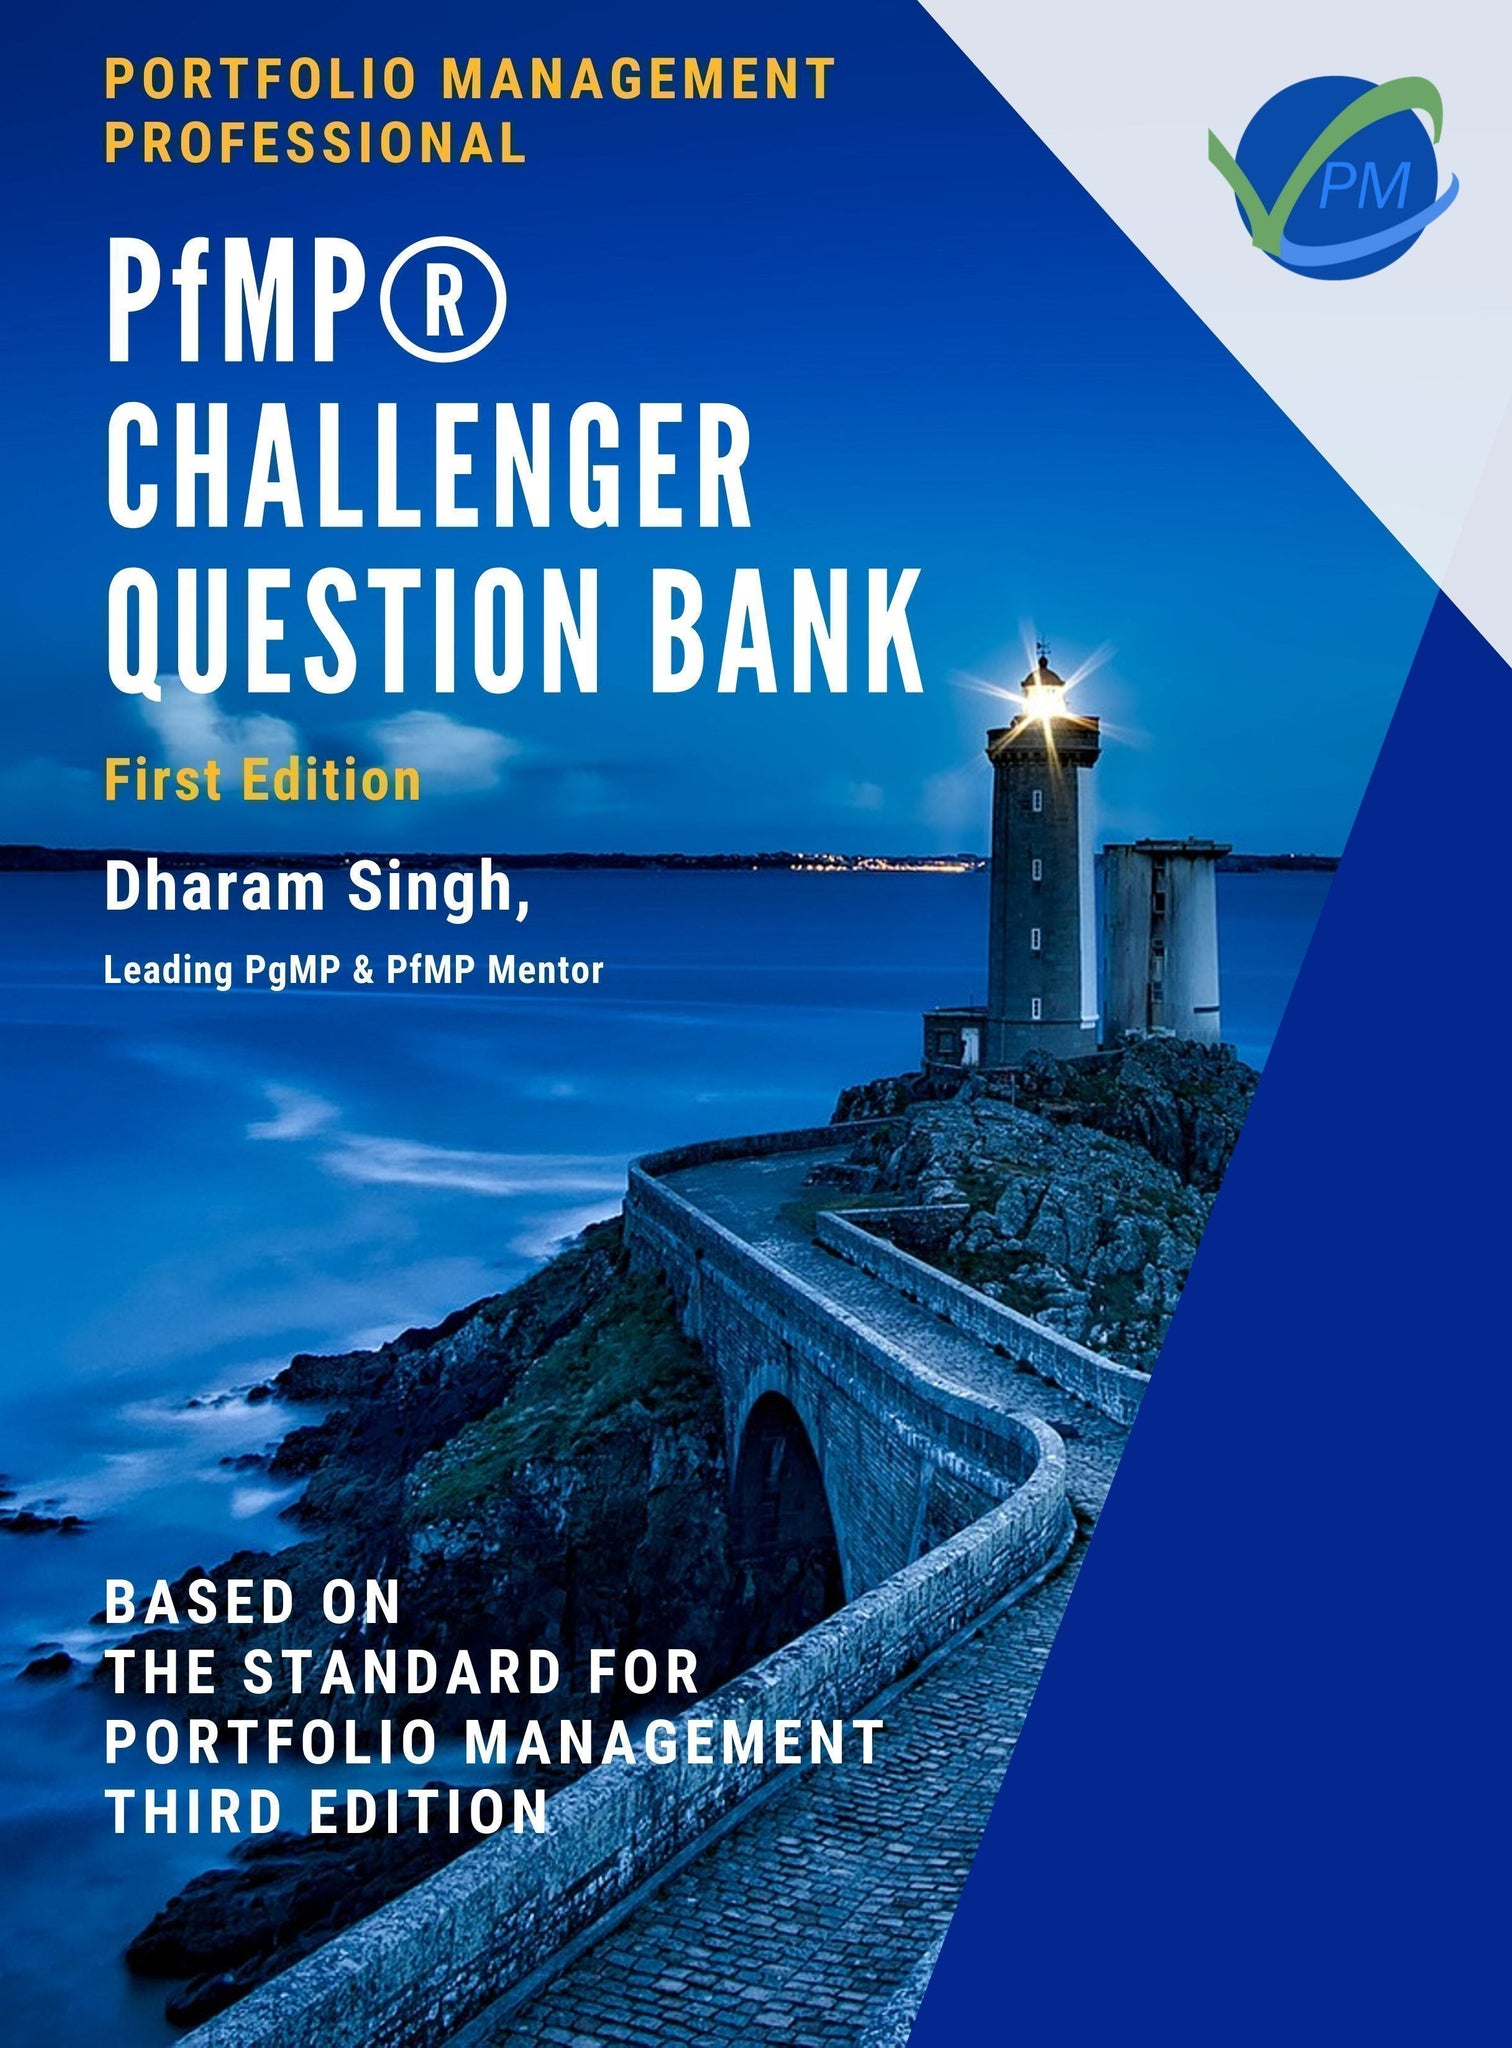 PfMP® Challenger | PfMP® Question Bank | based on SPM3